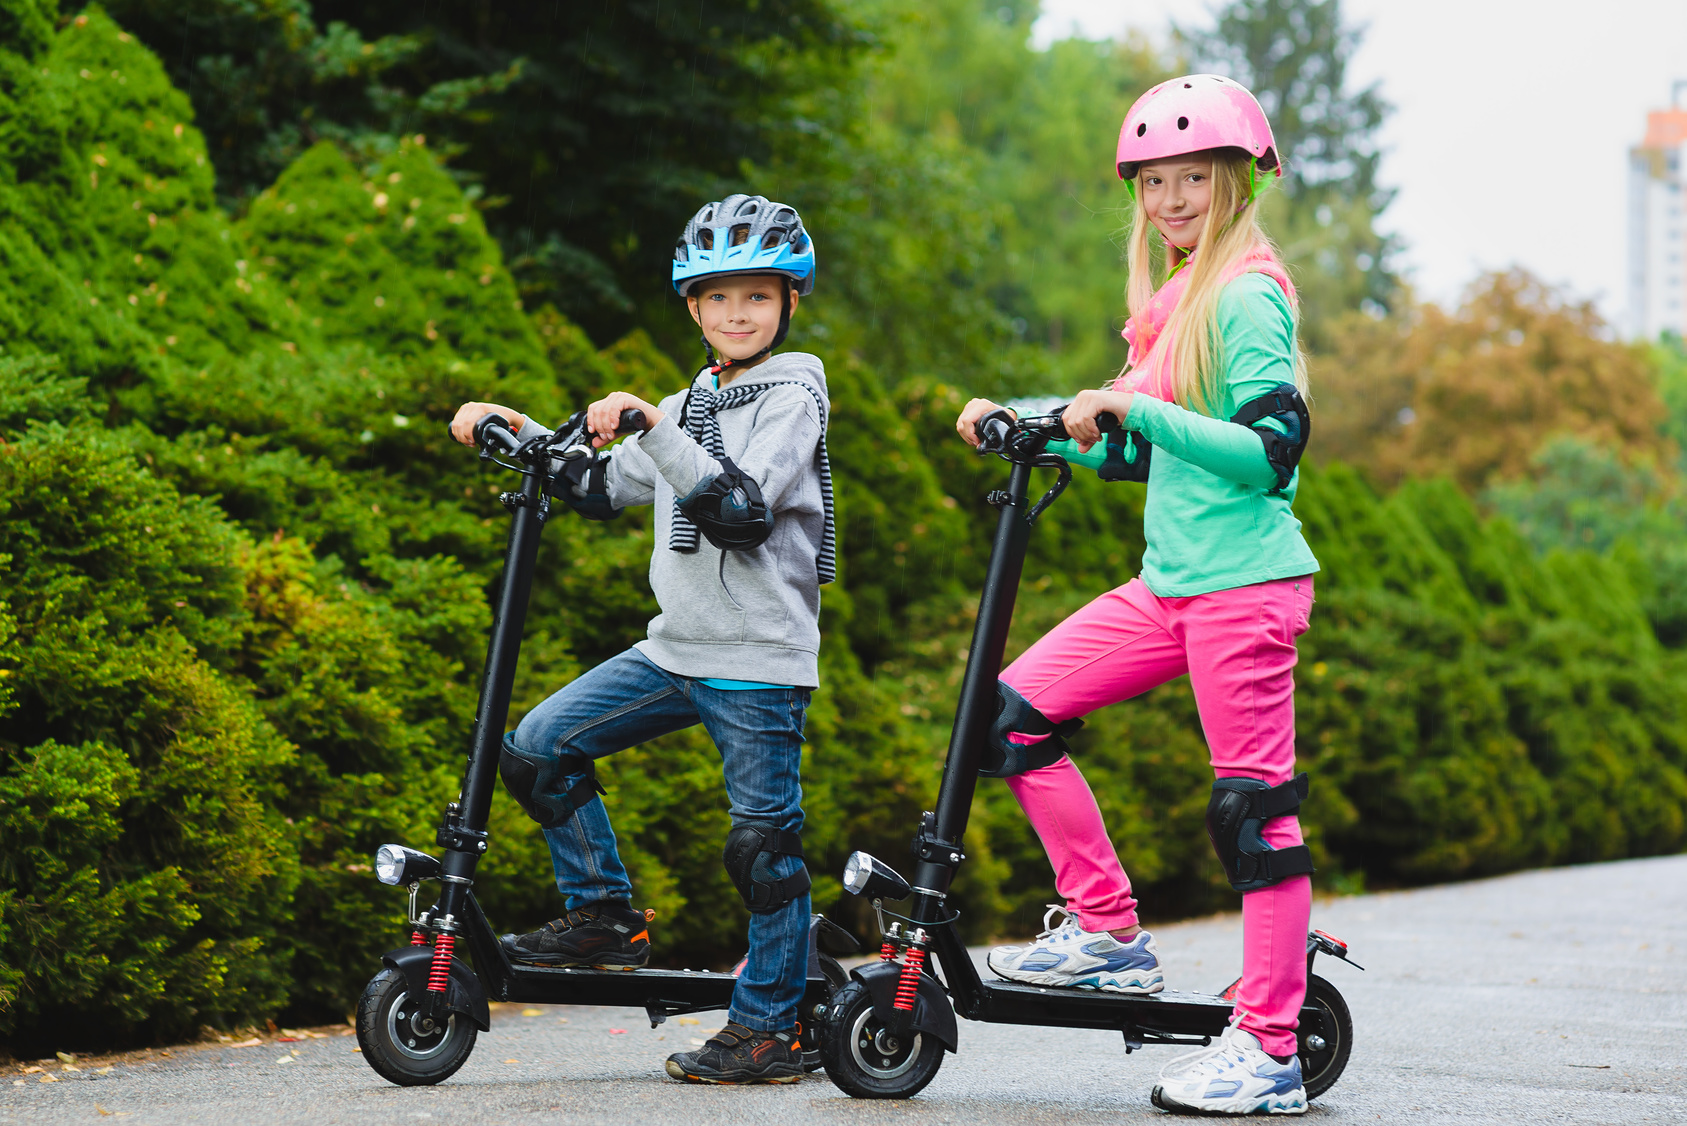 Best Electric Scooter for Adults and Kids